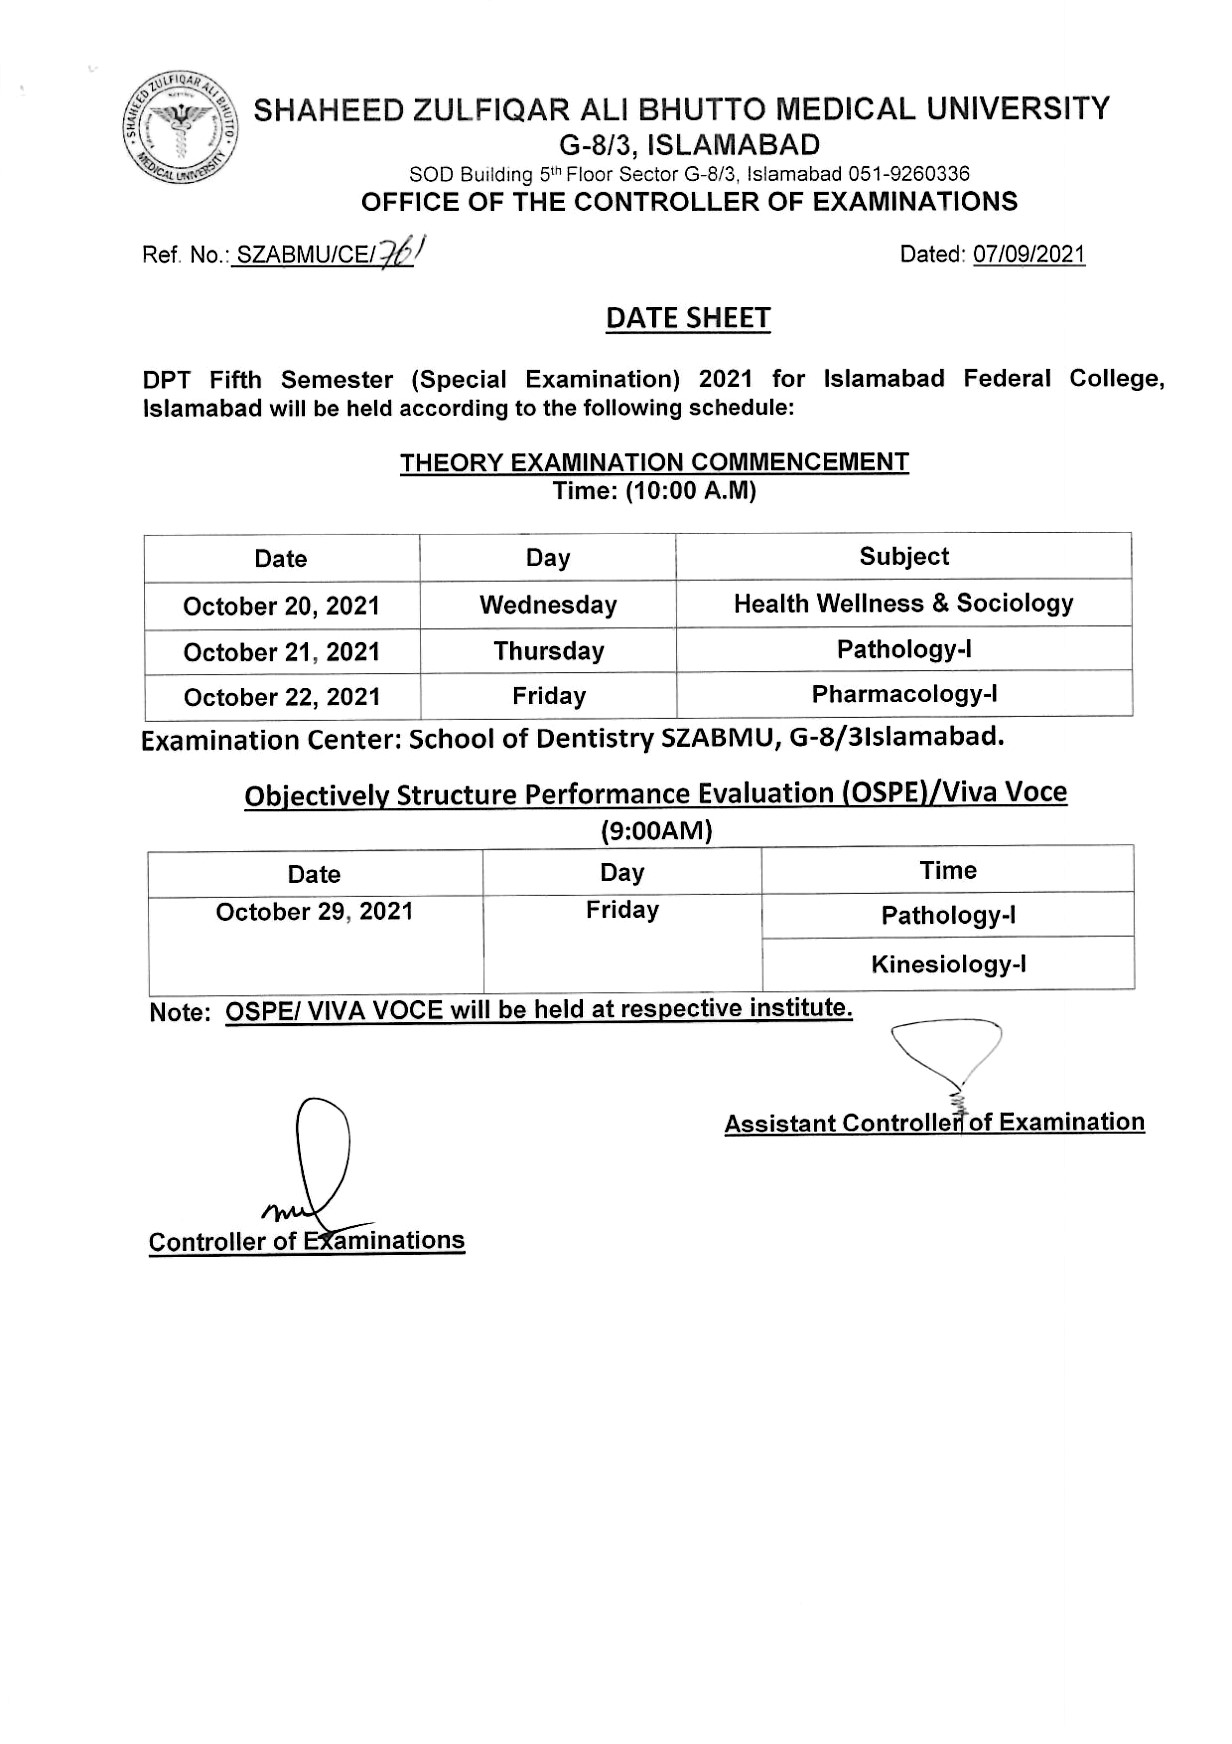 Date Sheet for DPT students of Islamabad Federal College, Islamabad